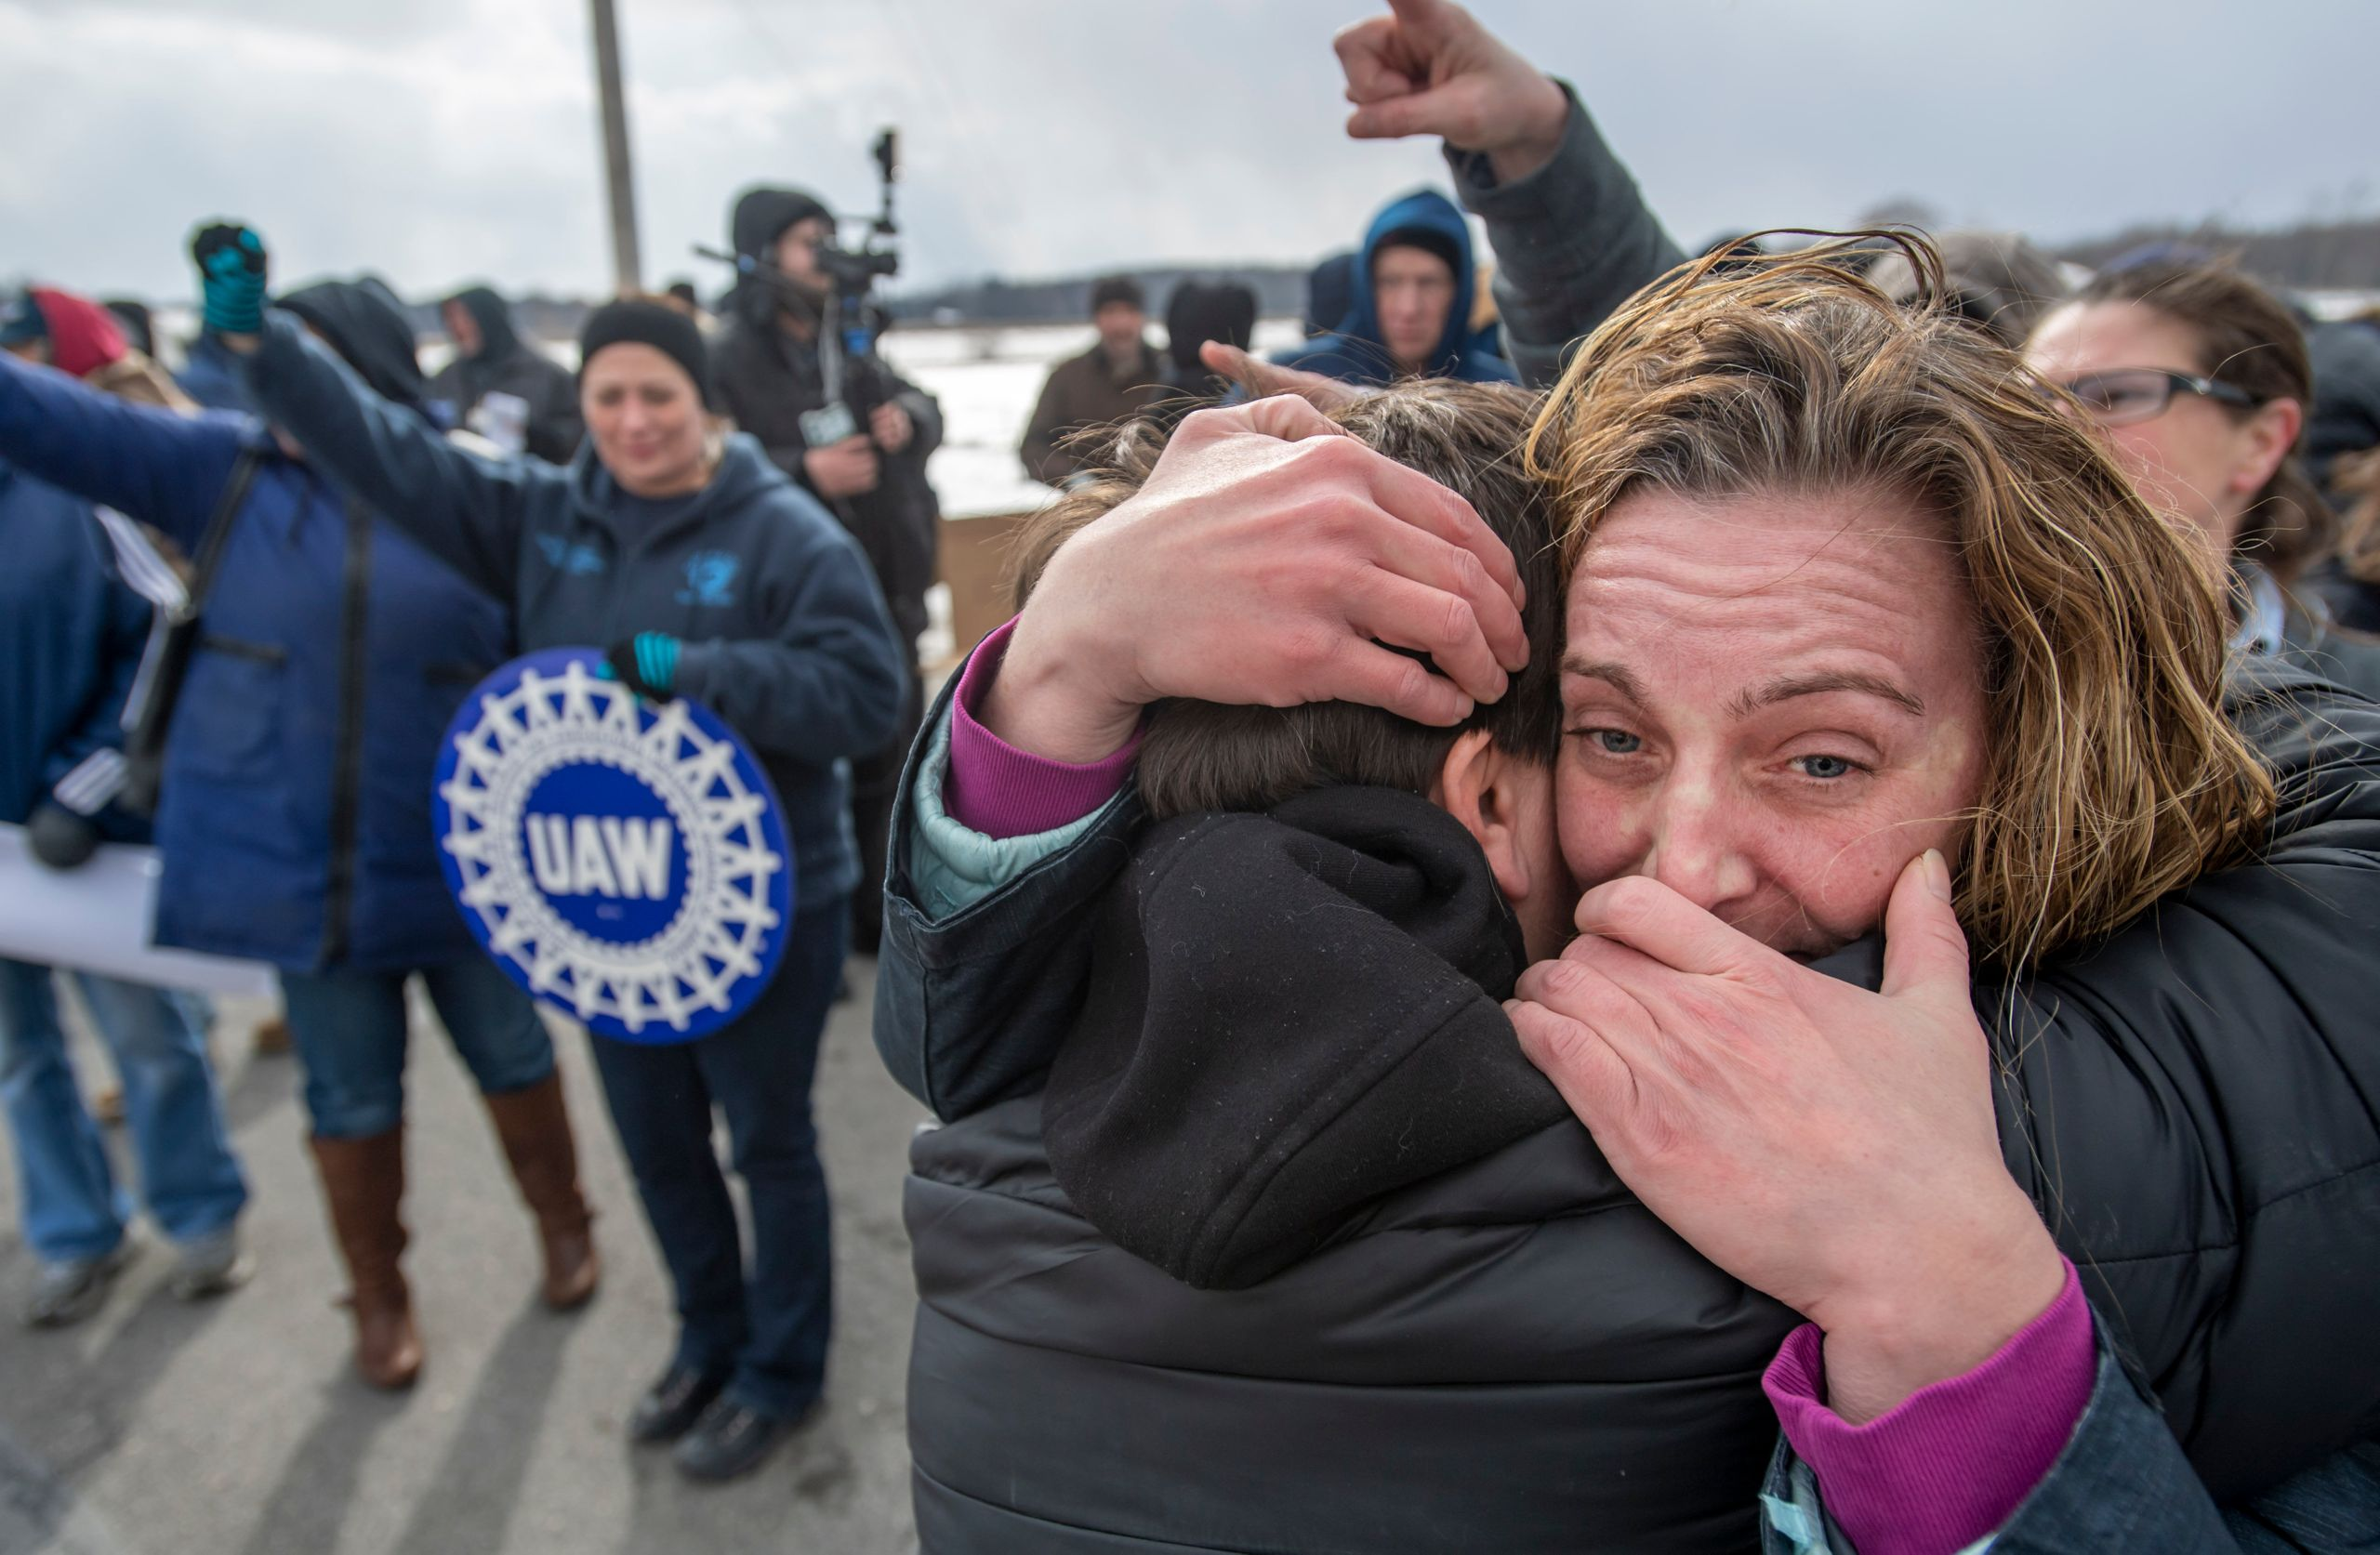 Amy Drennen, right, of Lordstown, Ohio, an employee at General Motors for 12 years, receives a hug from Pam Clark, as people